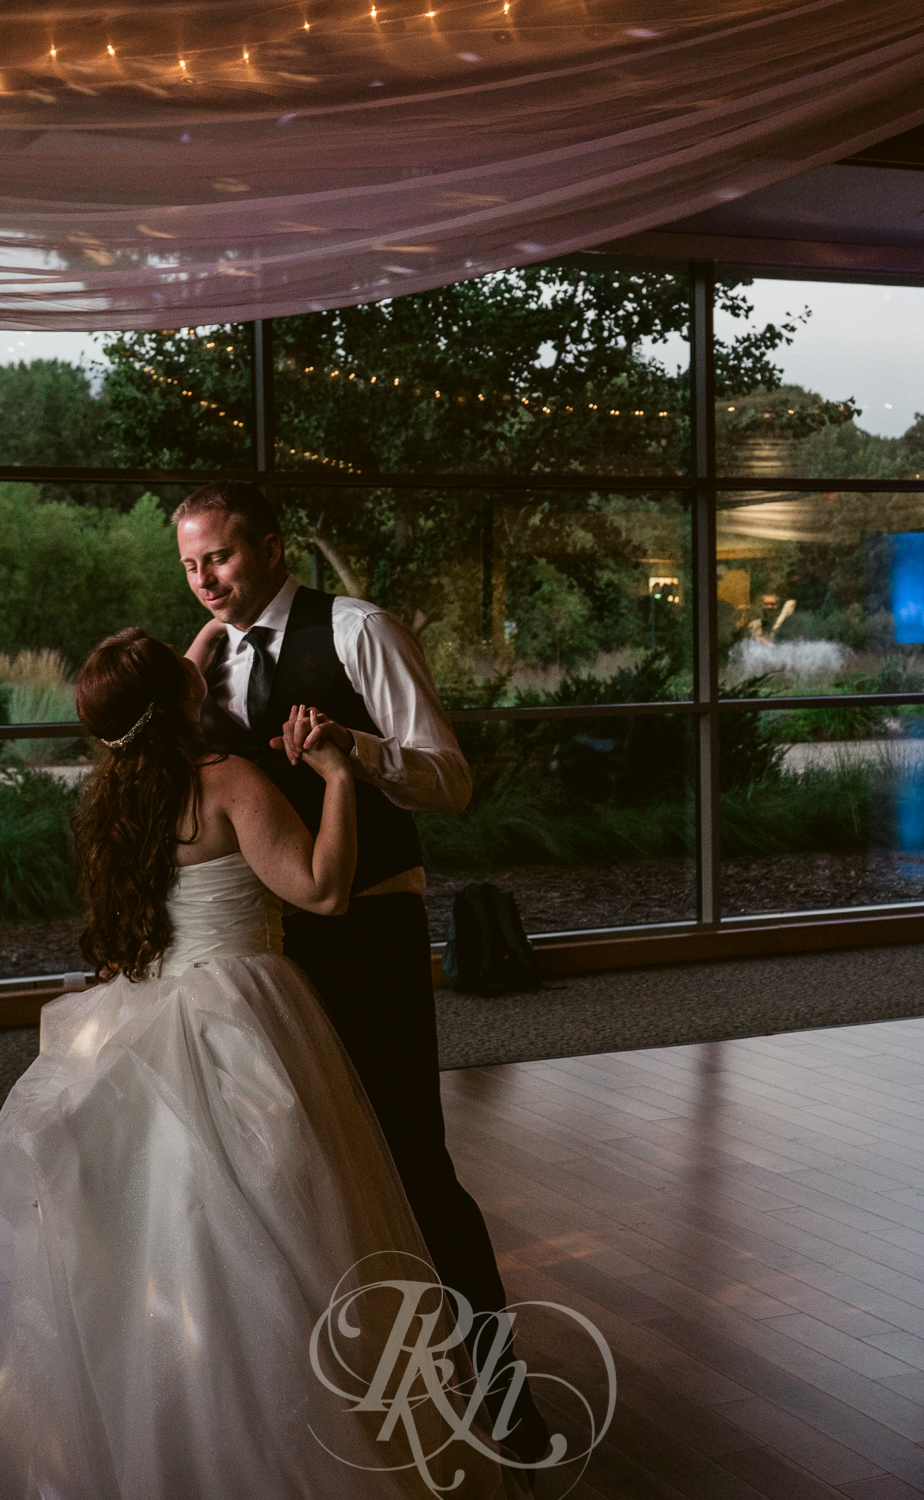 Jessie & Sean - Minnesota Wedding Photography - RKH Images - Reception -8.jpg